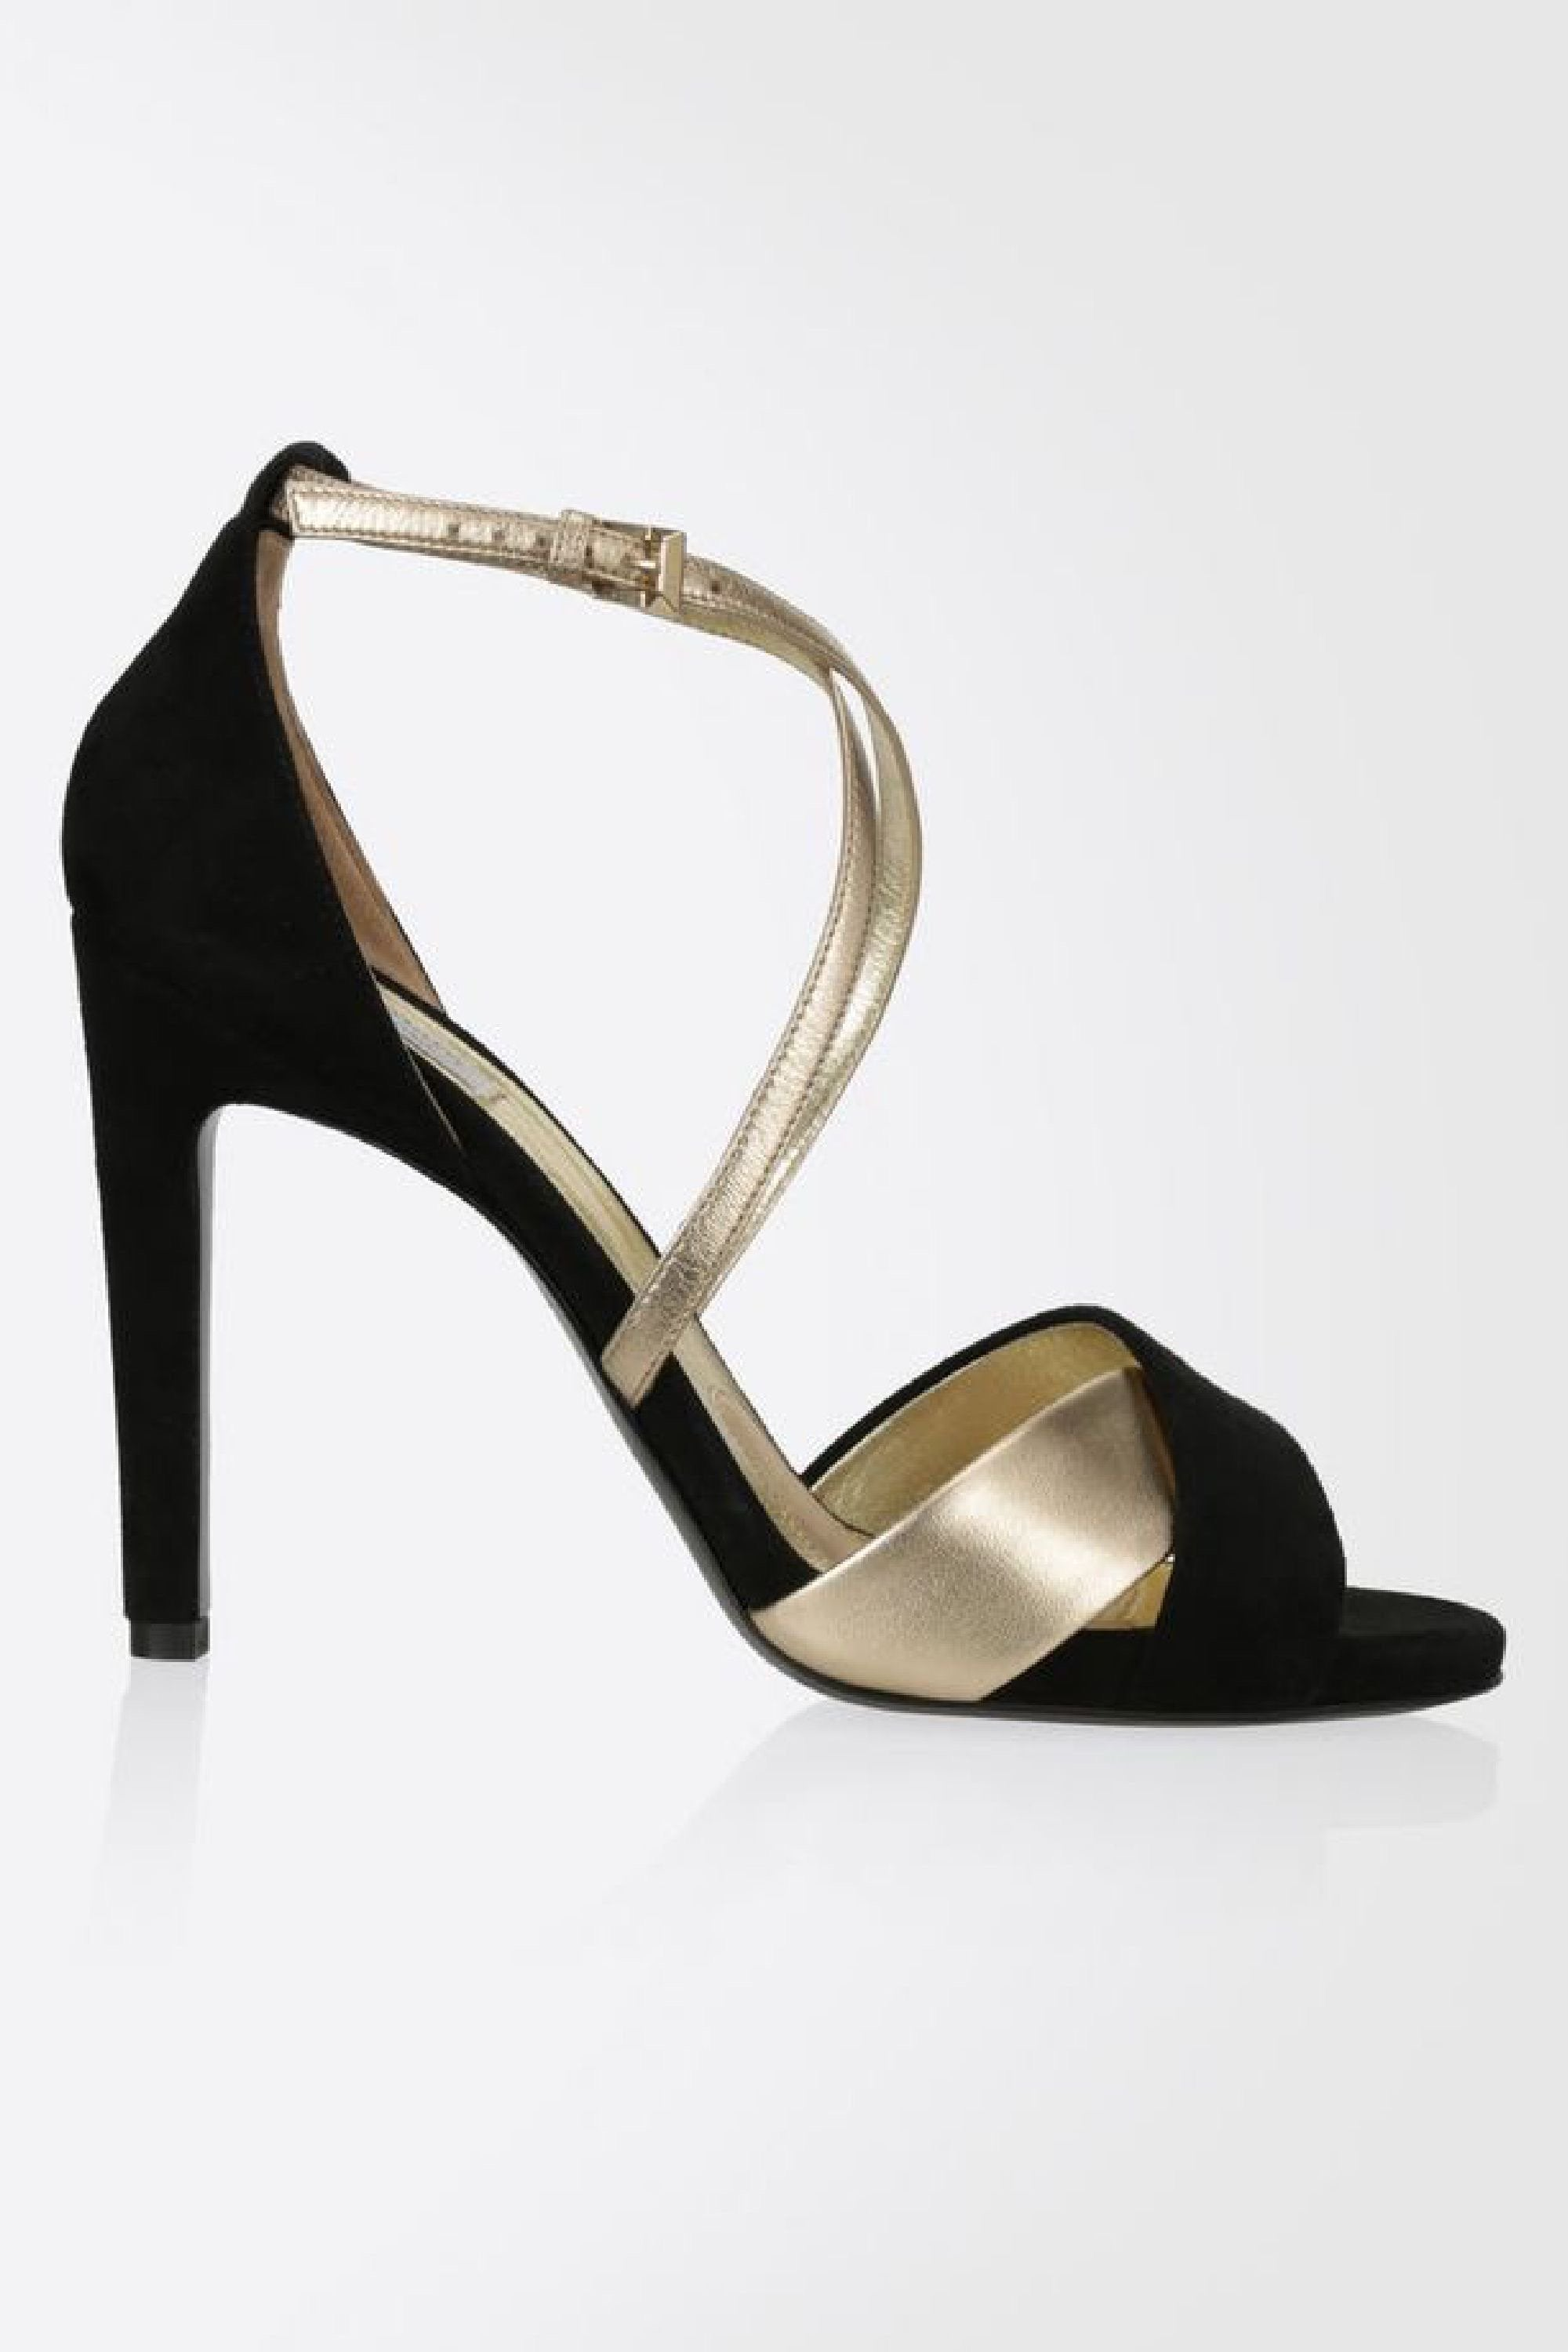 Marate Peep-Toe Sandals - The Bobby Boga